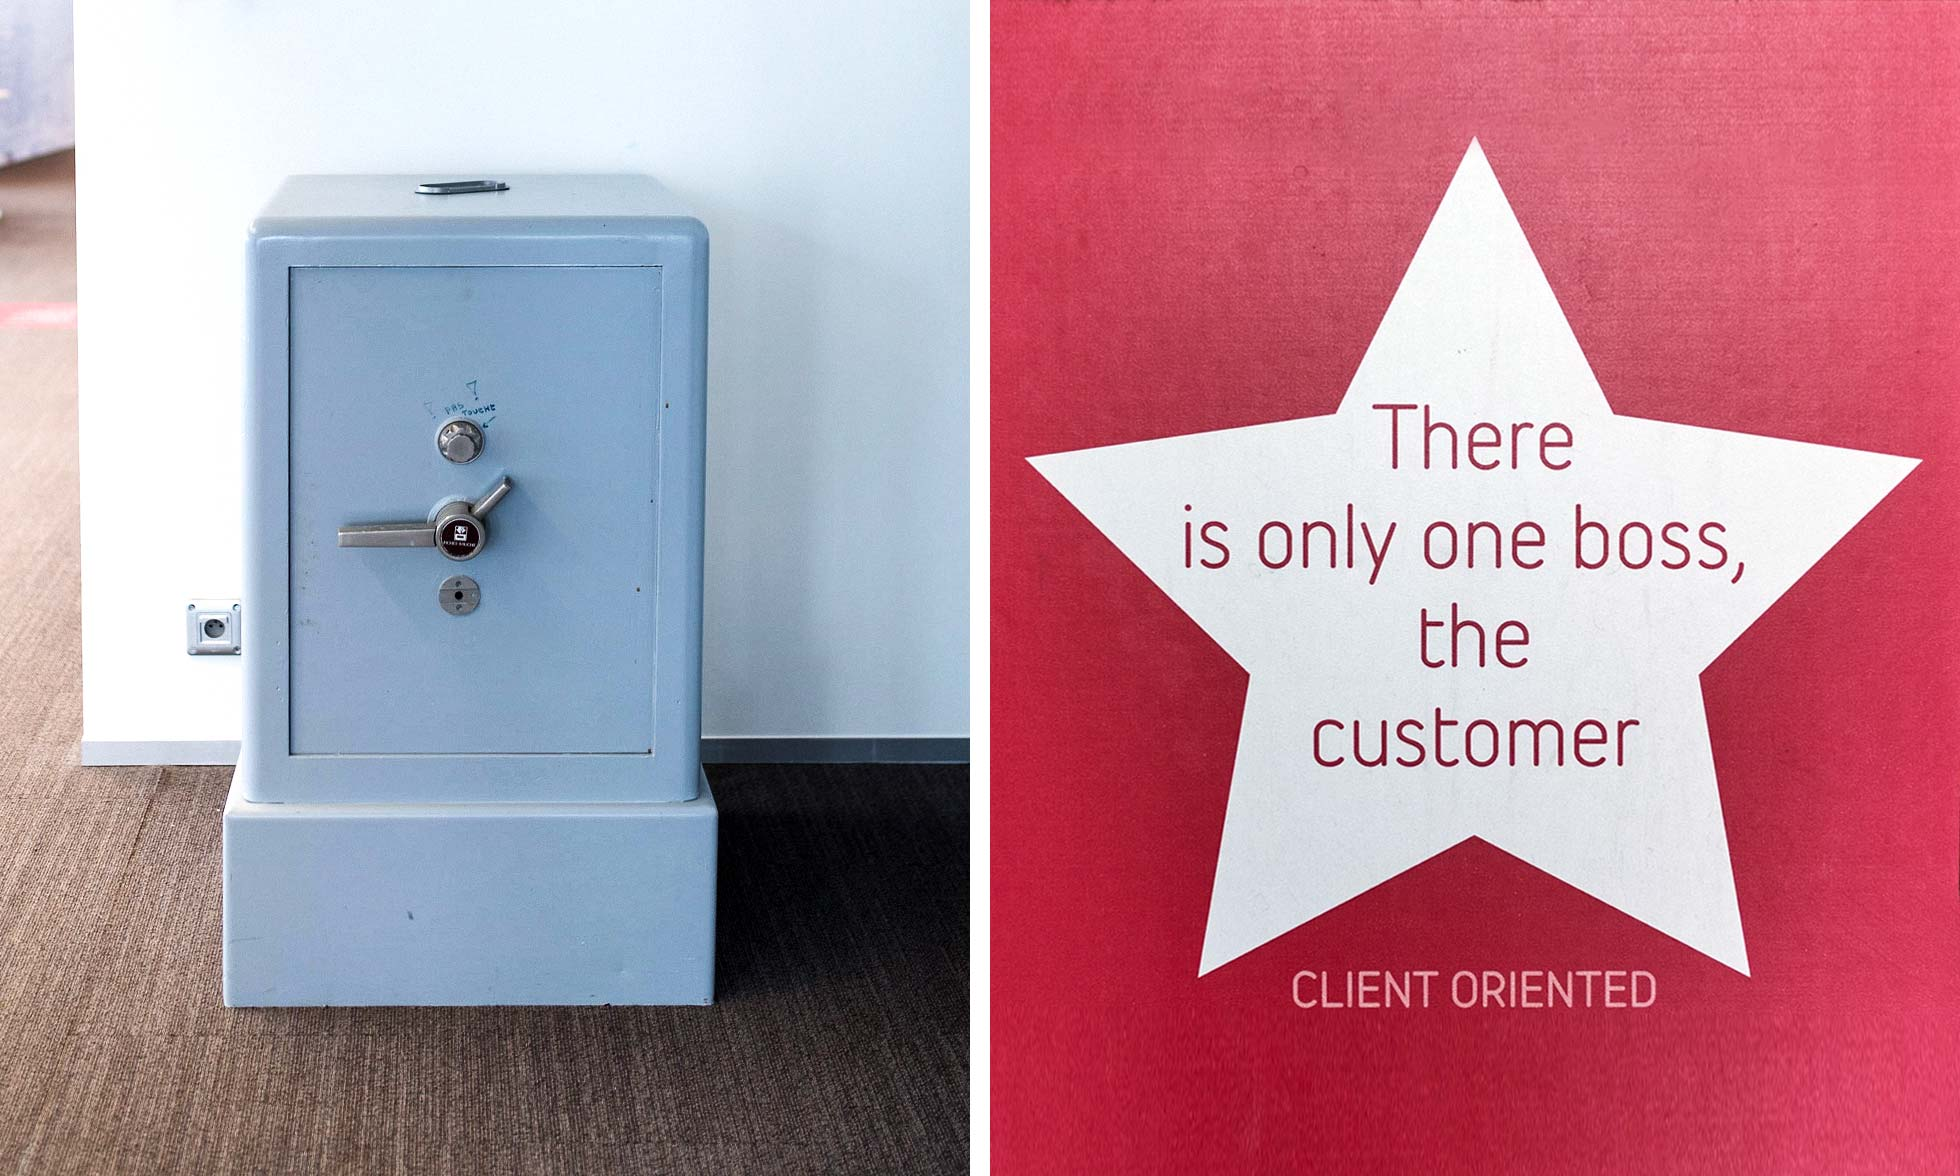 An old fashioned safe and a star with a quote